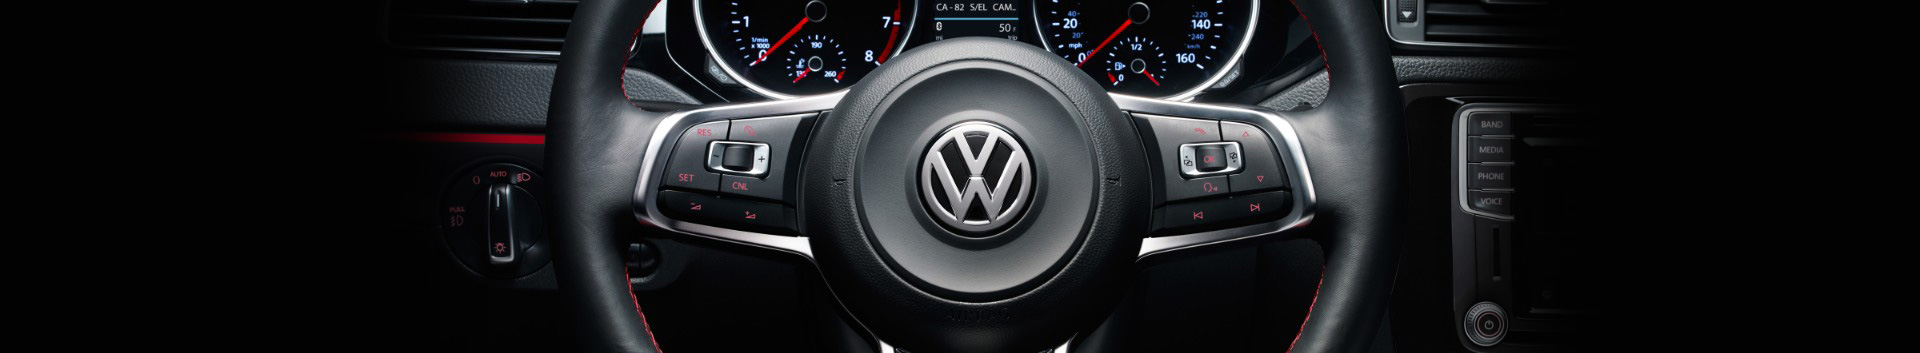 Volkswagen Loyalty Rate